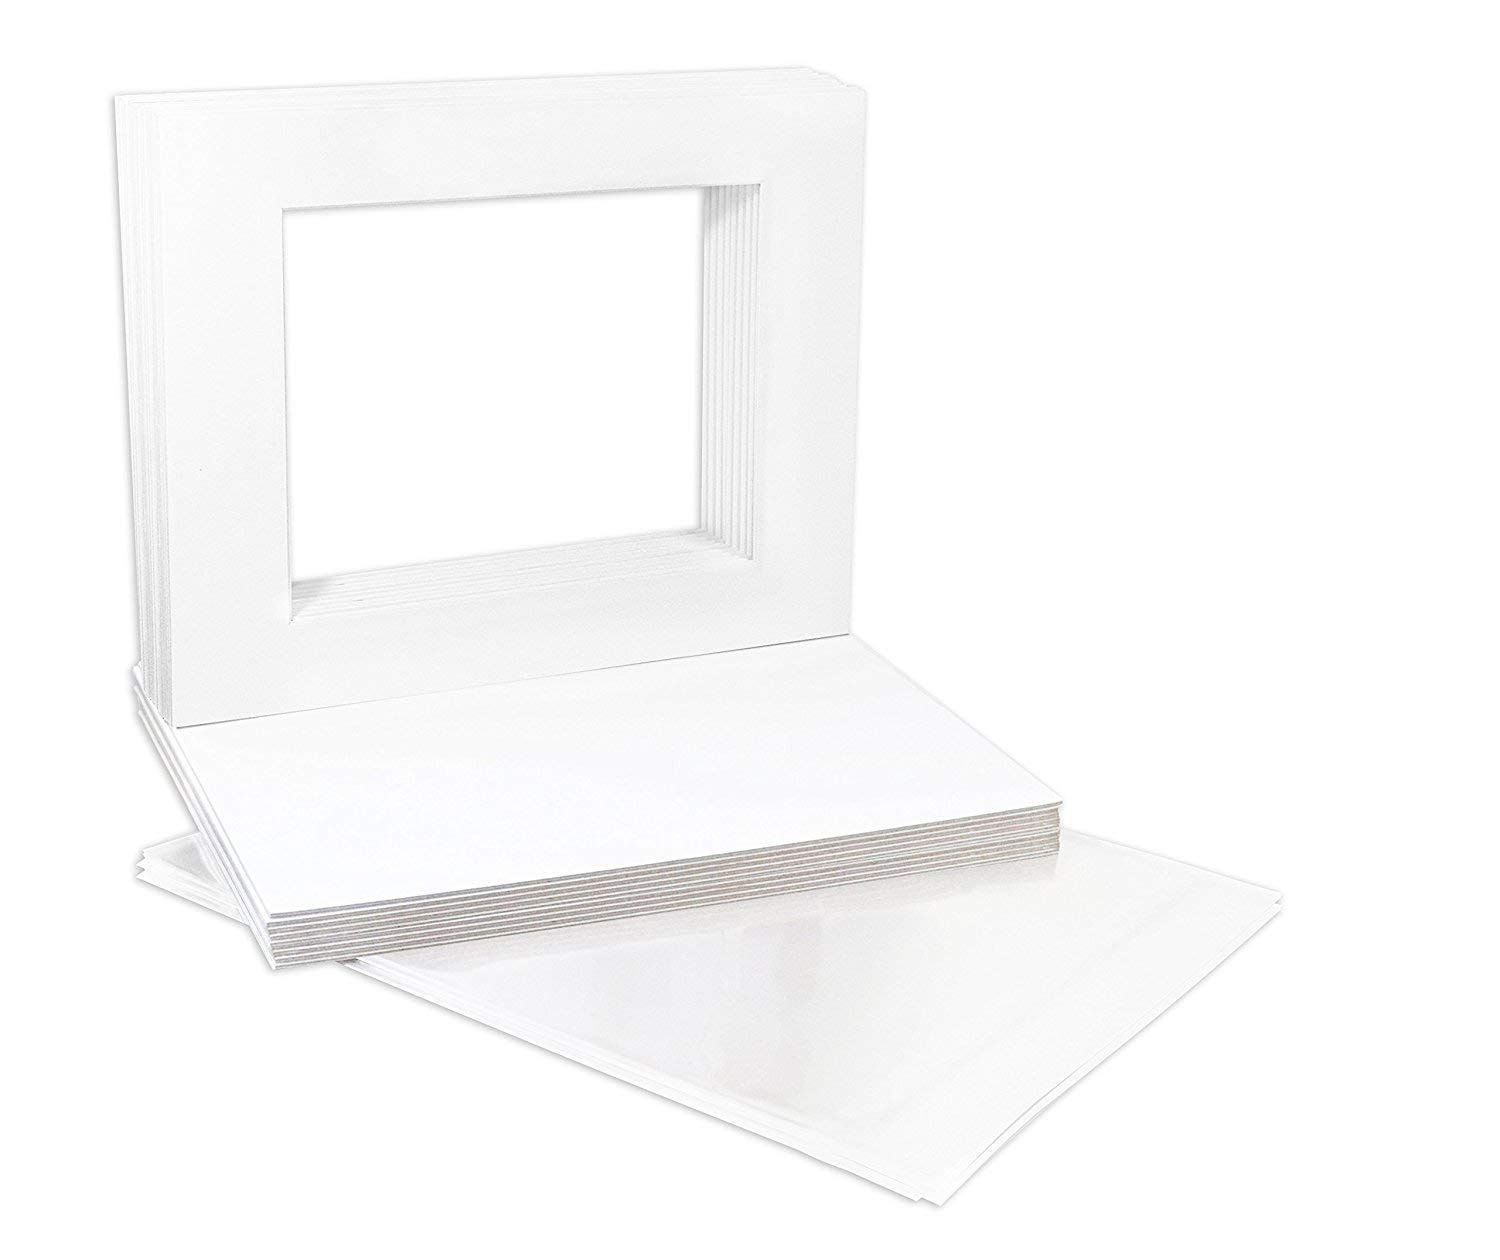 Studio 500, USA A1 BRAND, Acid-Free Pre-Cut 11x14 Ivory Picture Mat Sets; Pack of 25 Ivory Core Bevel Cut Mattes for 8x10 Photos, Pack of 25 Backers & Pack of 25 Crystal Clear Plastic Sleeves Bags Battuta Inc. BS500-8X10-WMBC-25